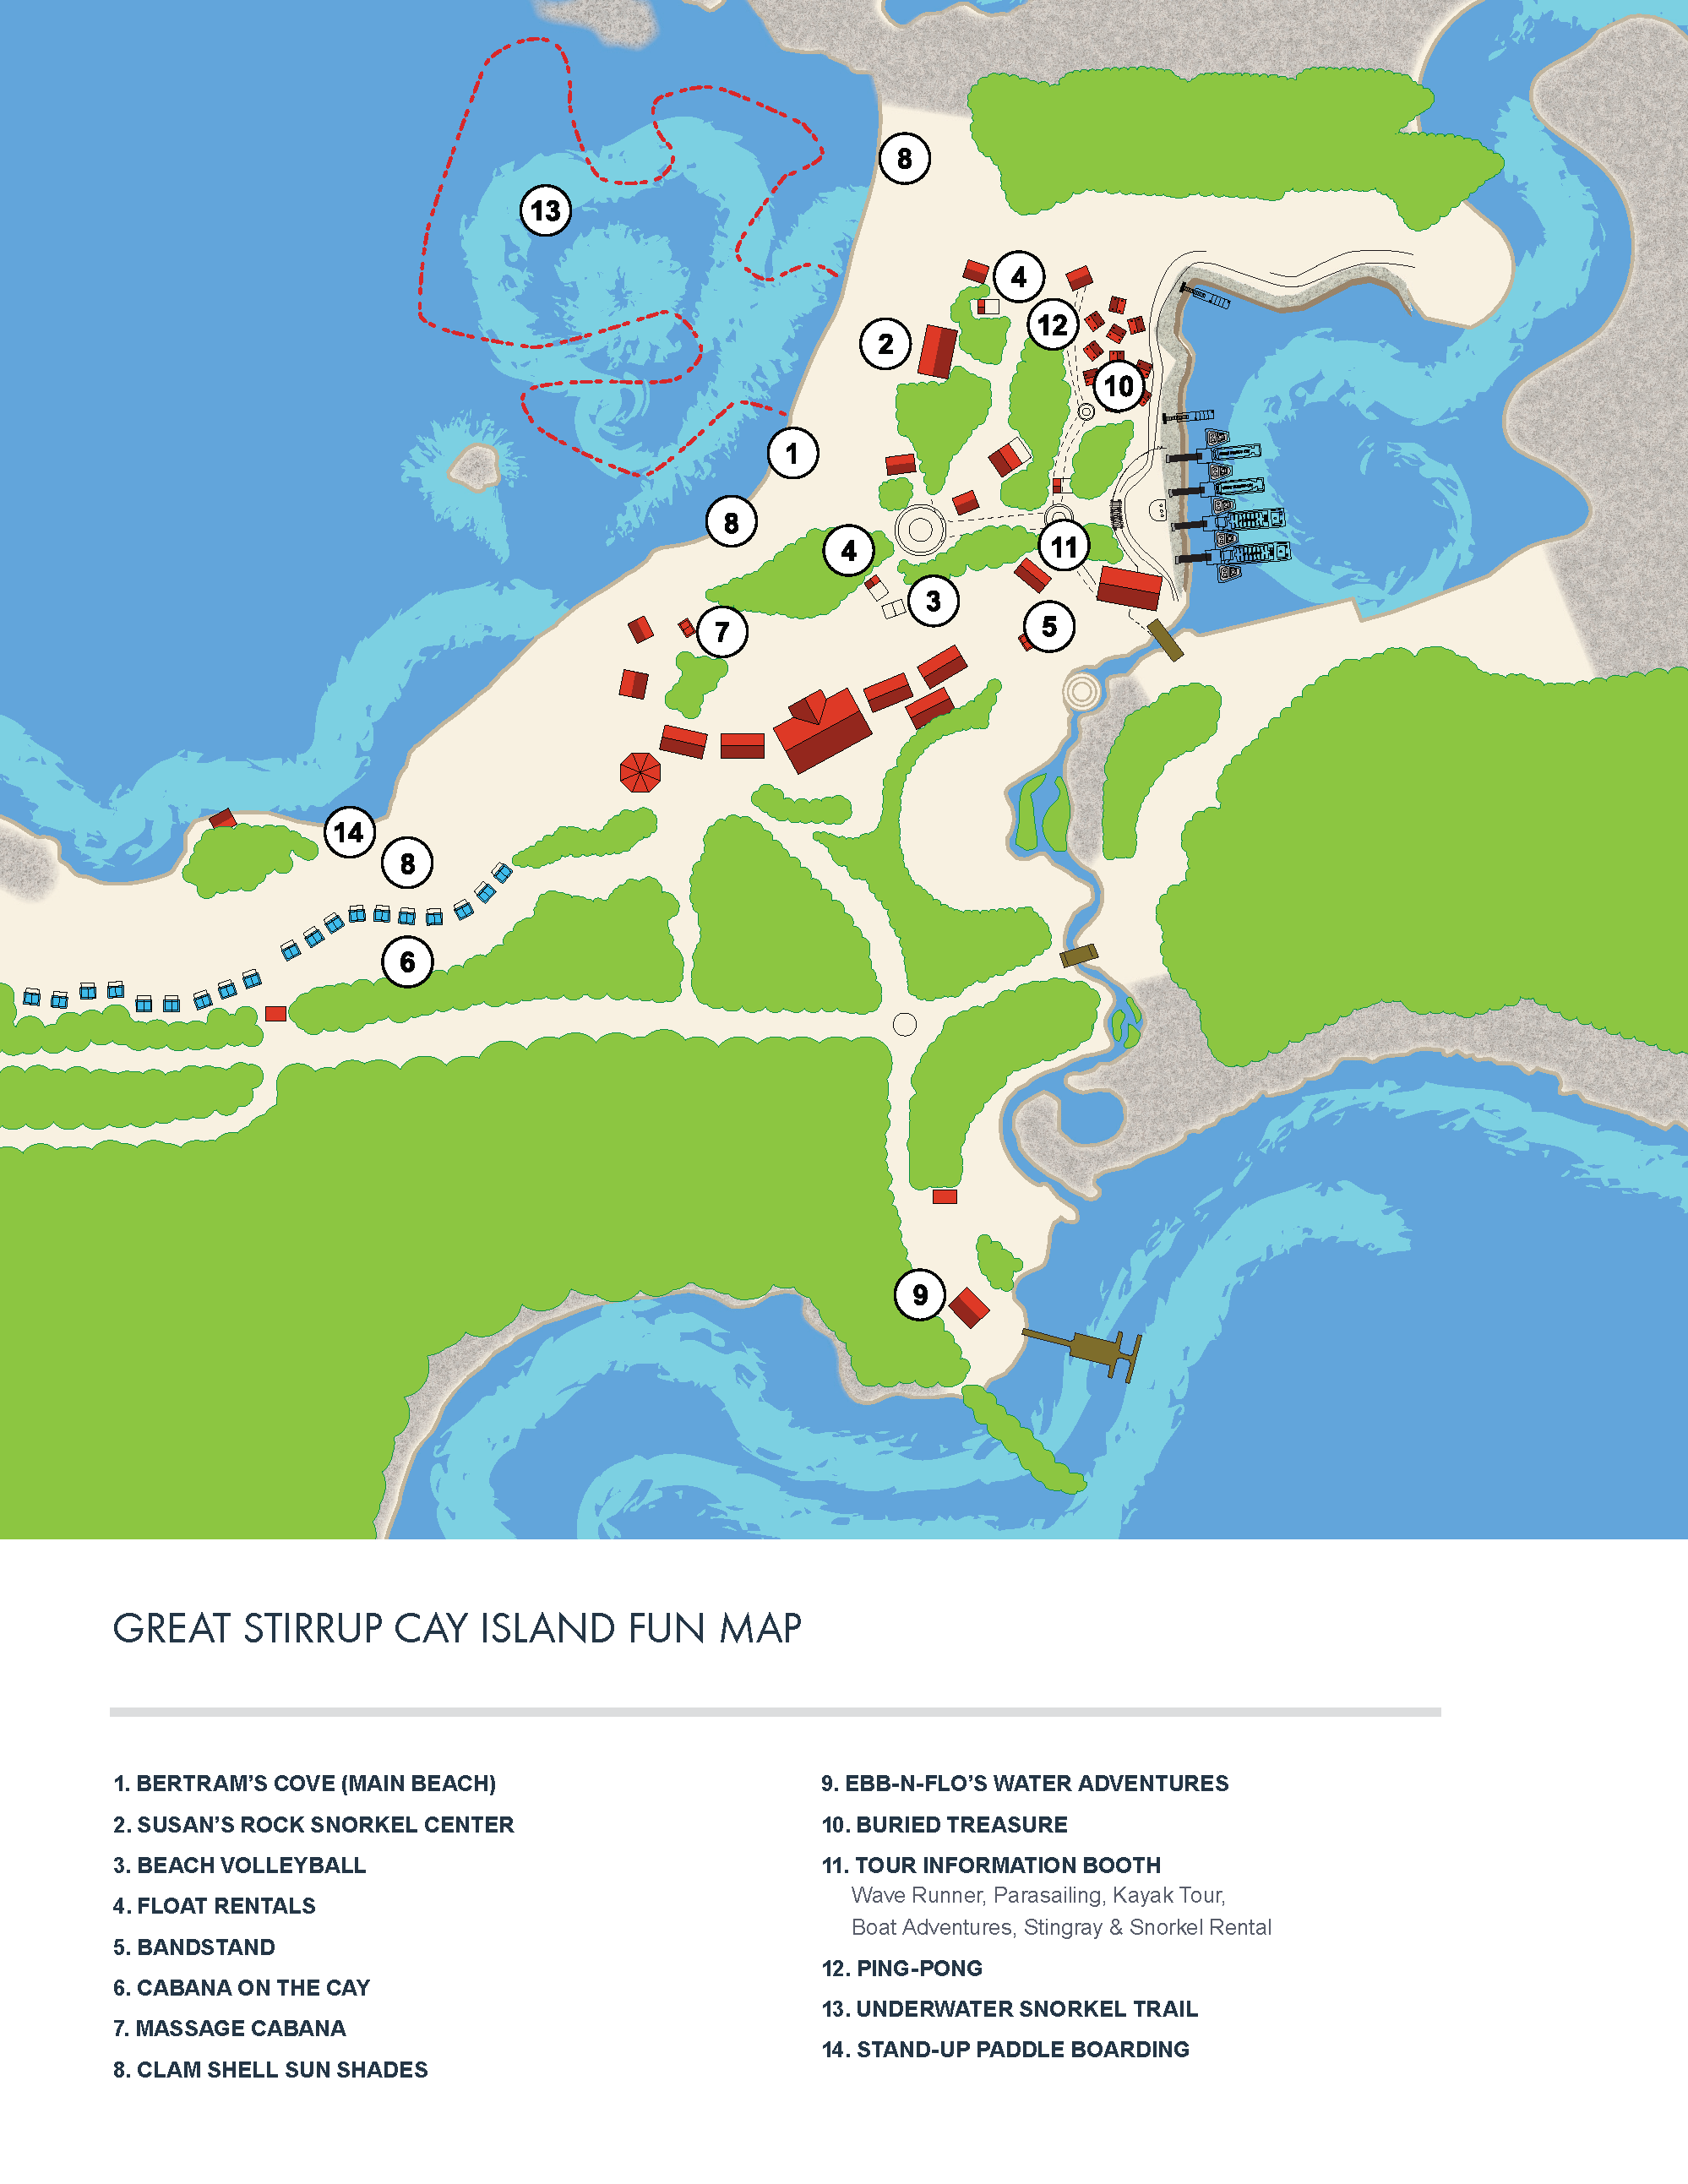 Map of Great Stirrup Cay (c) NCL